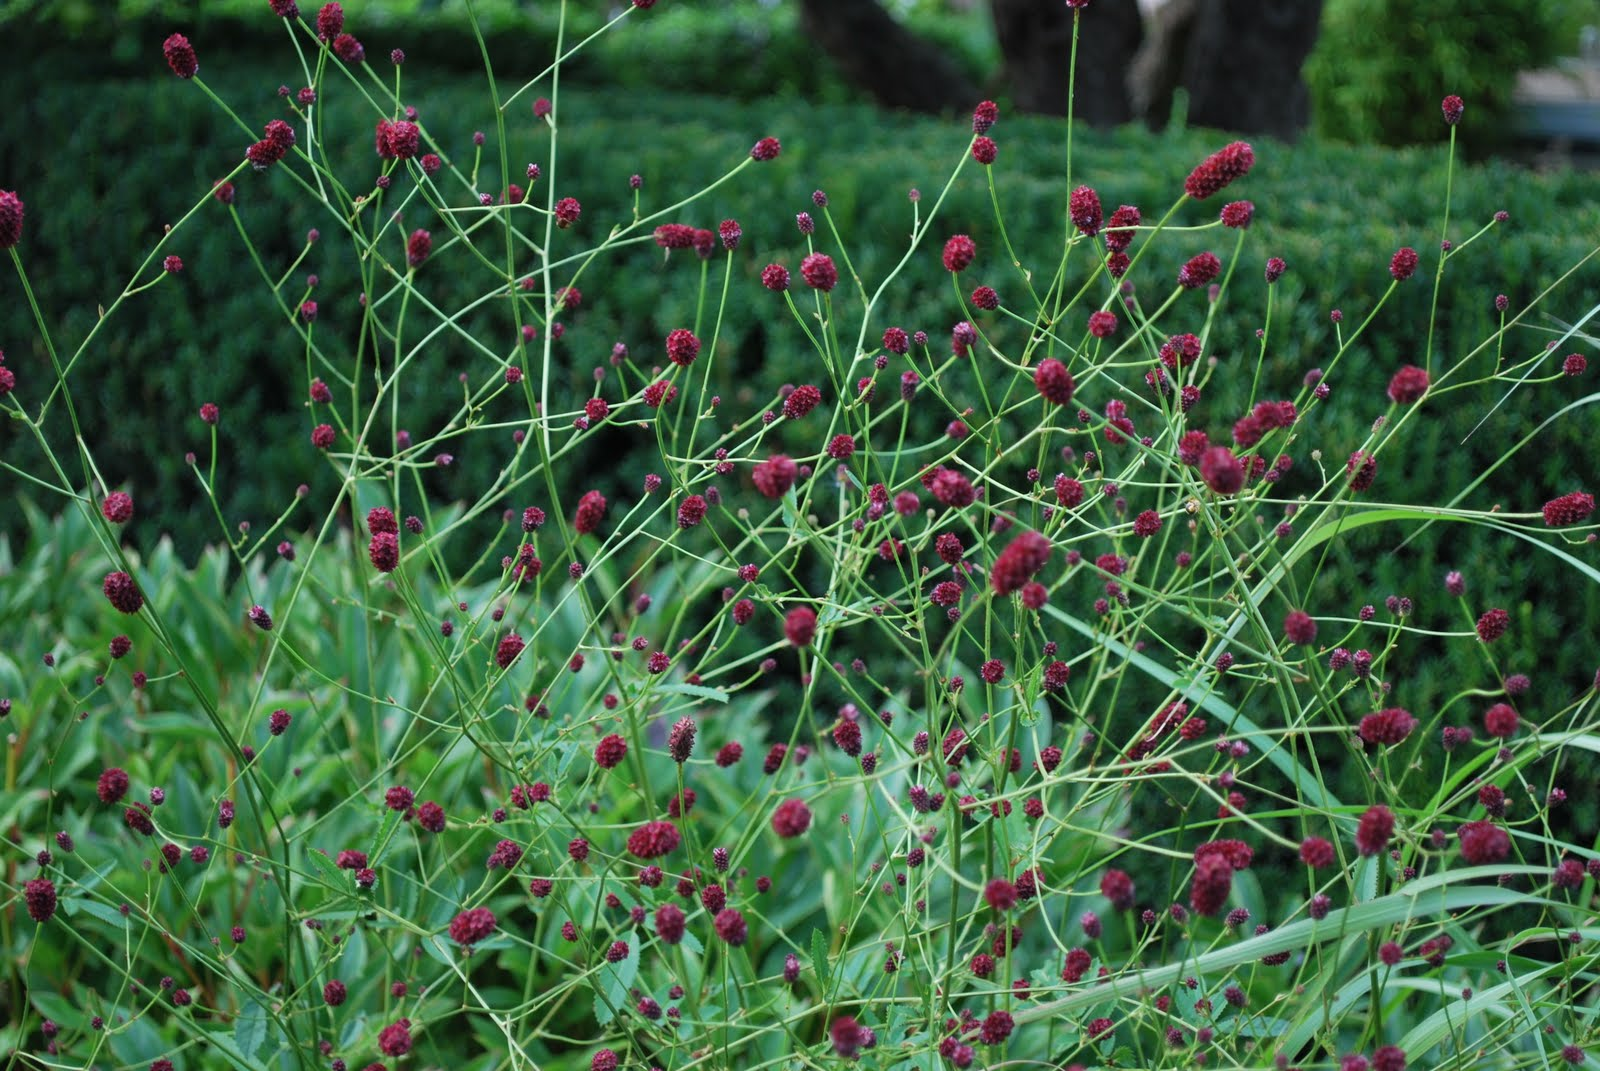 Katarinas tr dg rd blodtoppar for Sanguisorba officinalis red thunder